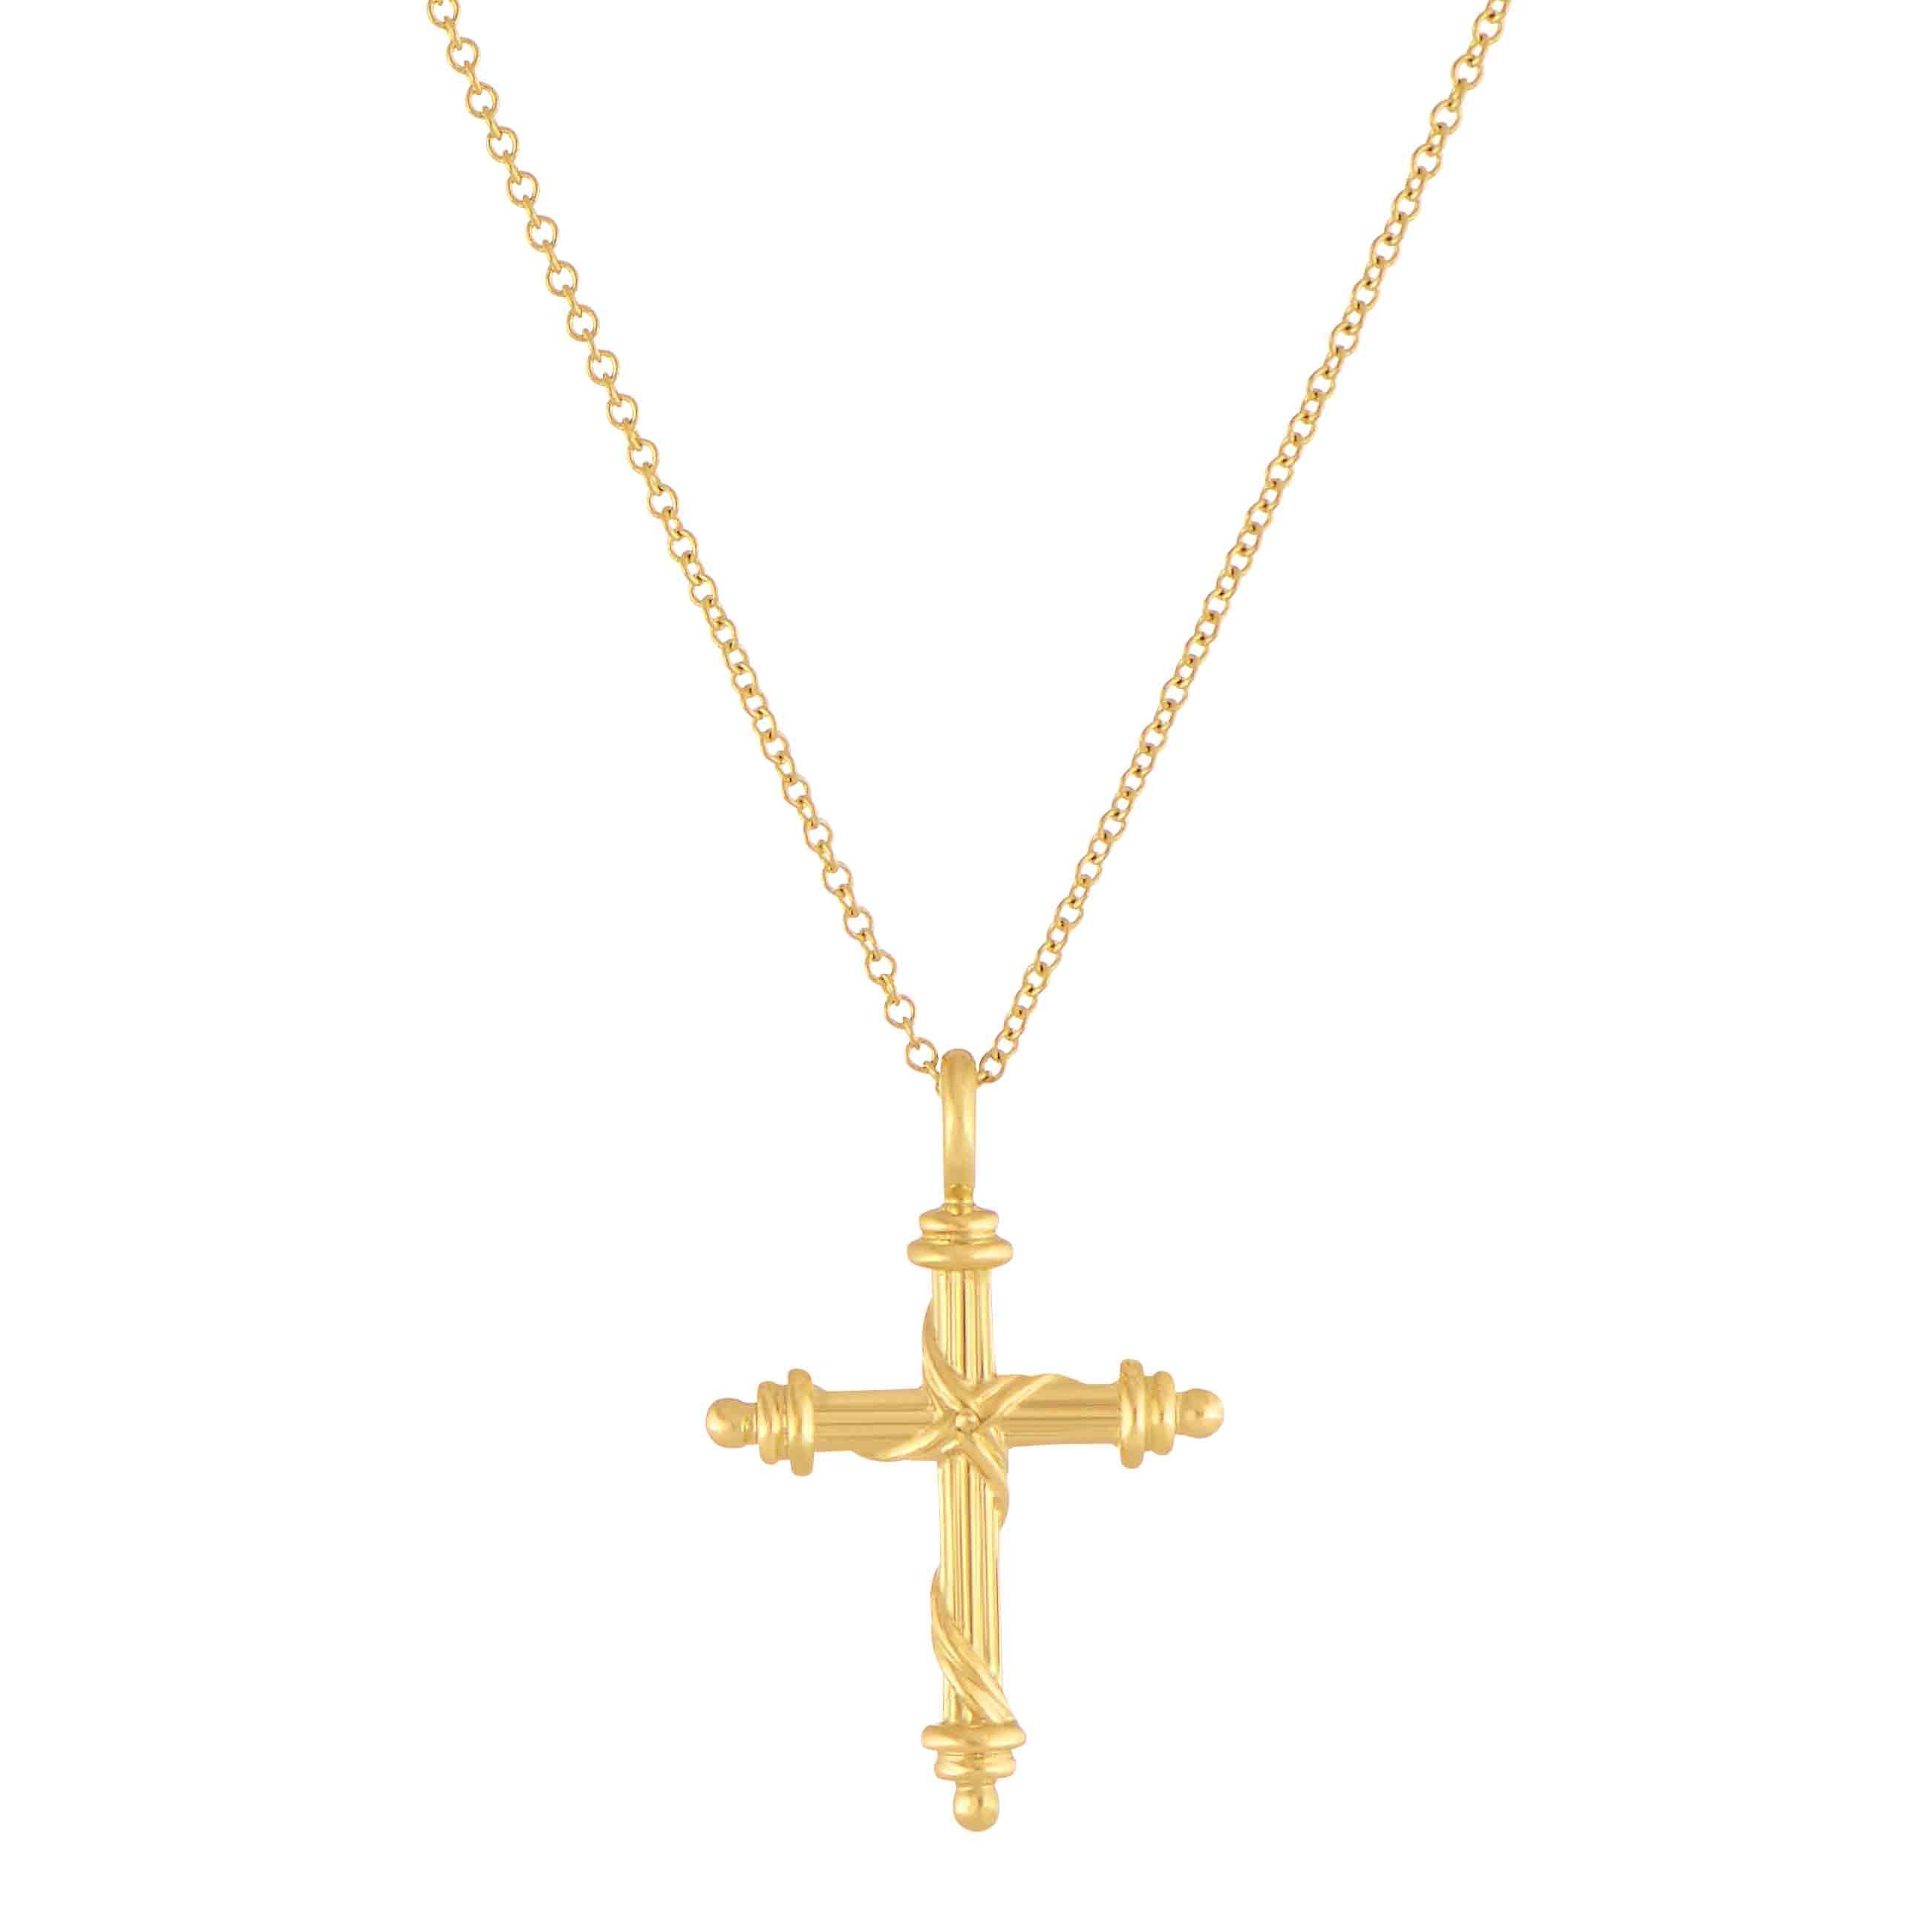 heritage cross pendant necklace in 18k yellow gold mini 16